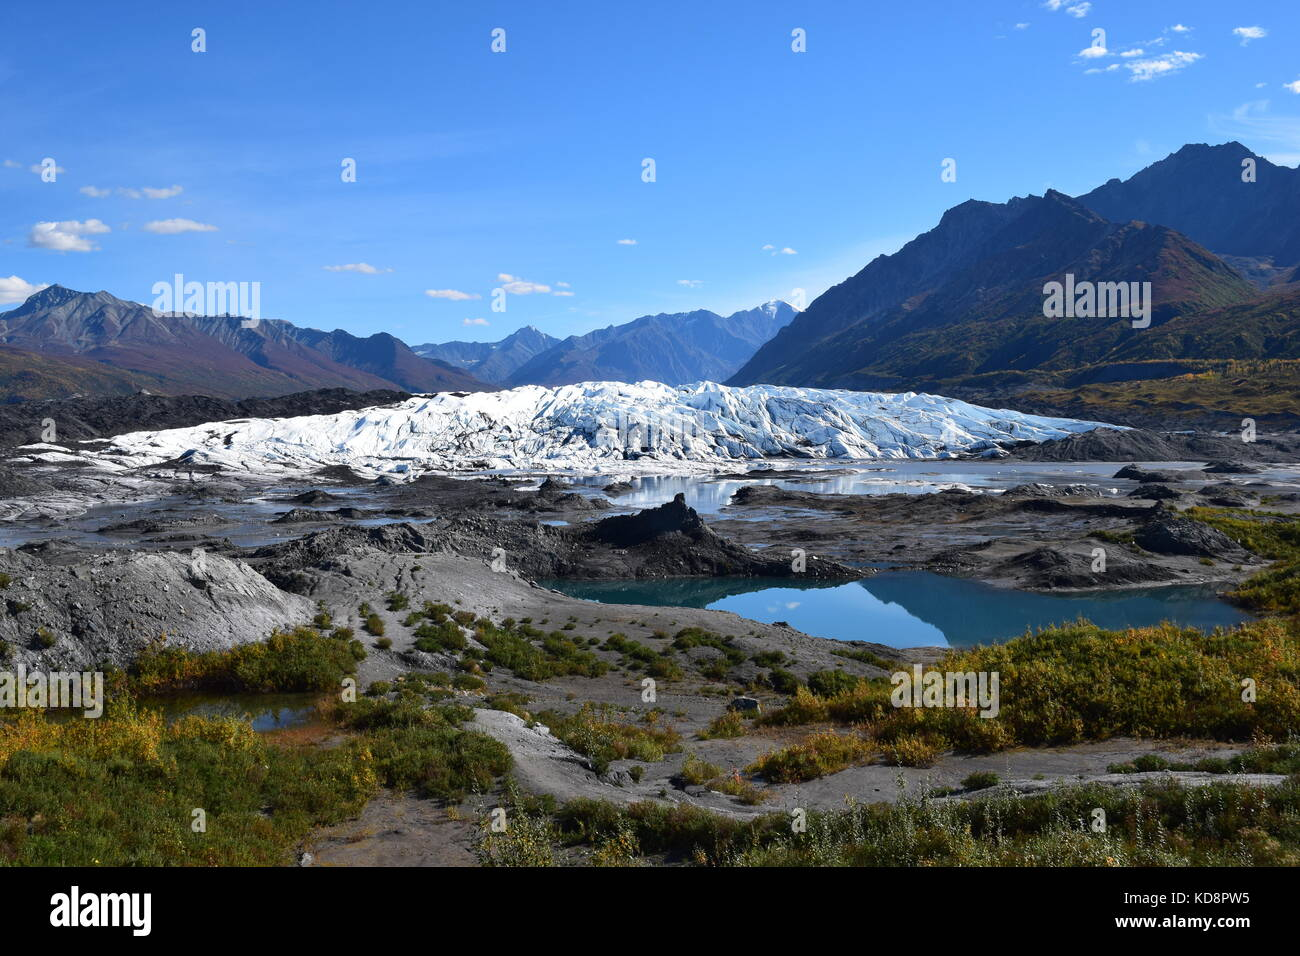 Matanuska Glacier in Alaska - The front - Stock Image